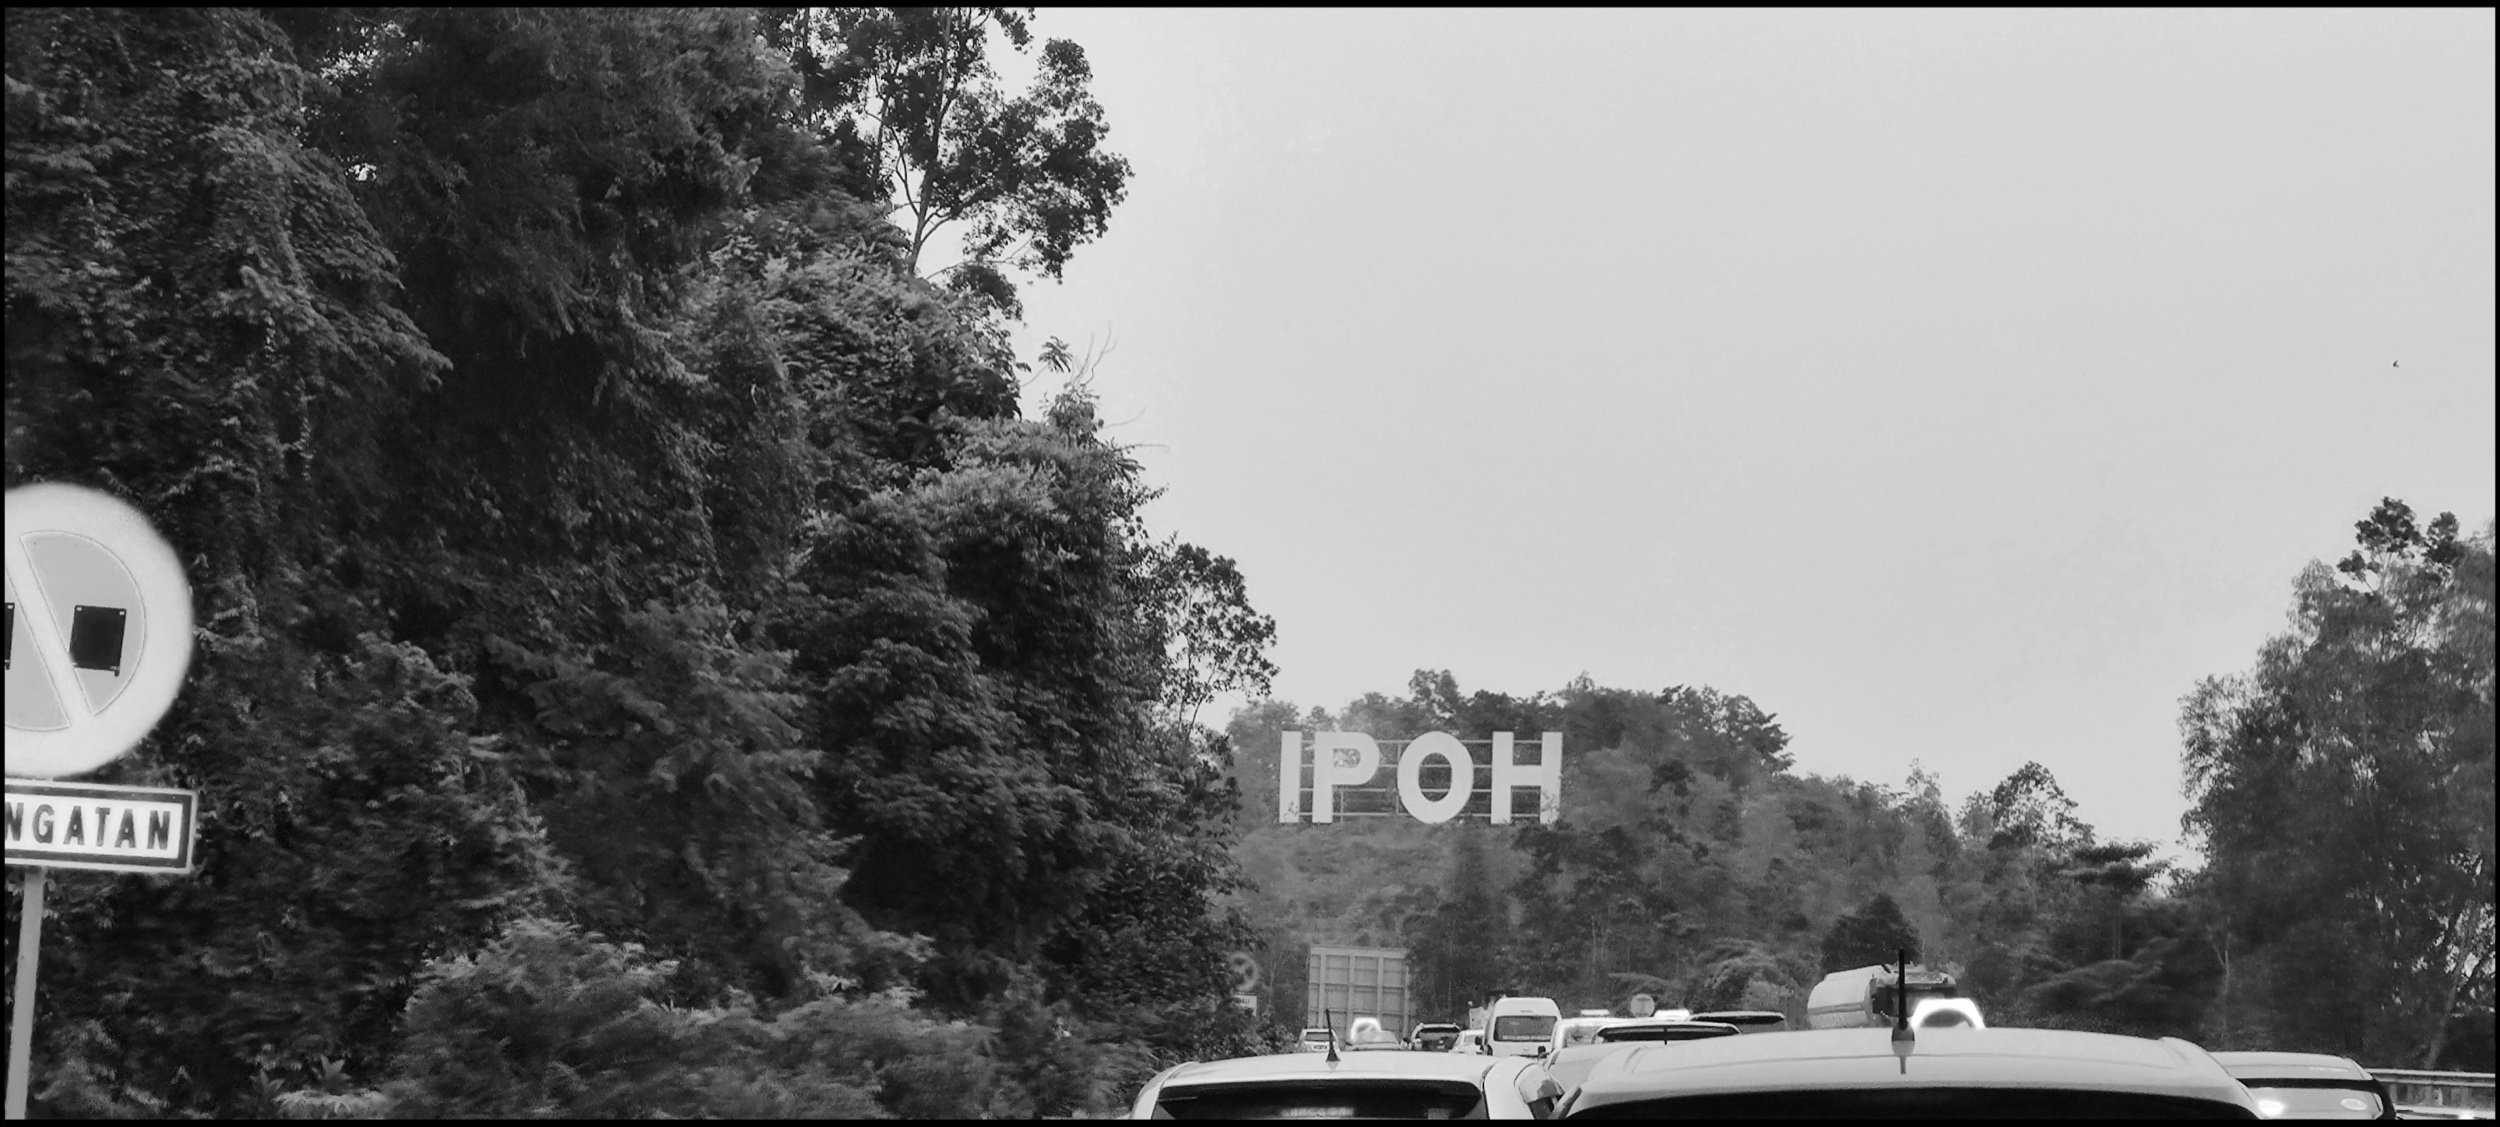 Reaching Ipoh. In a jam!